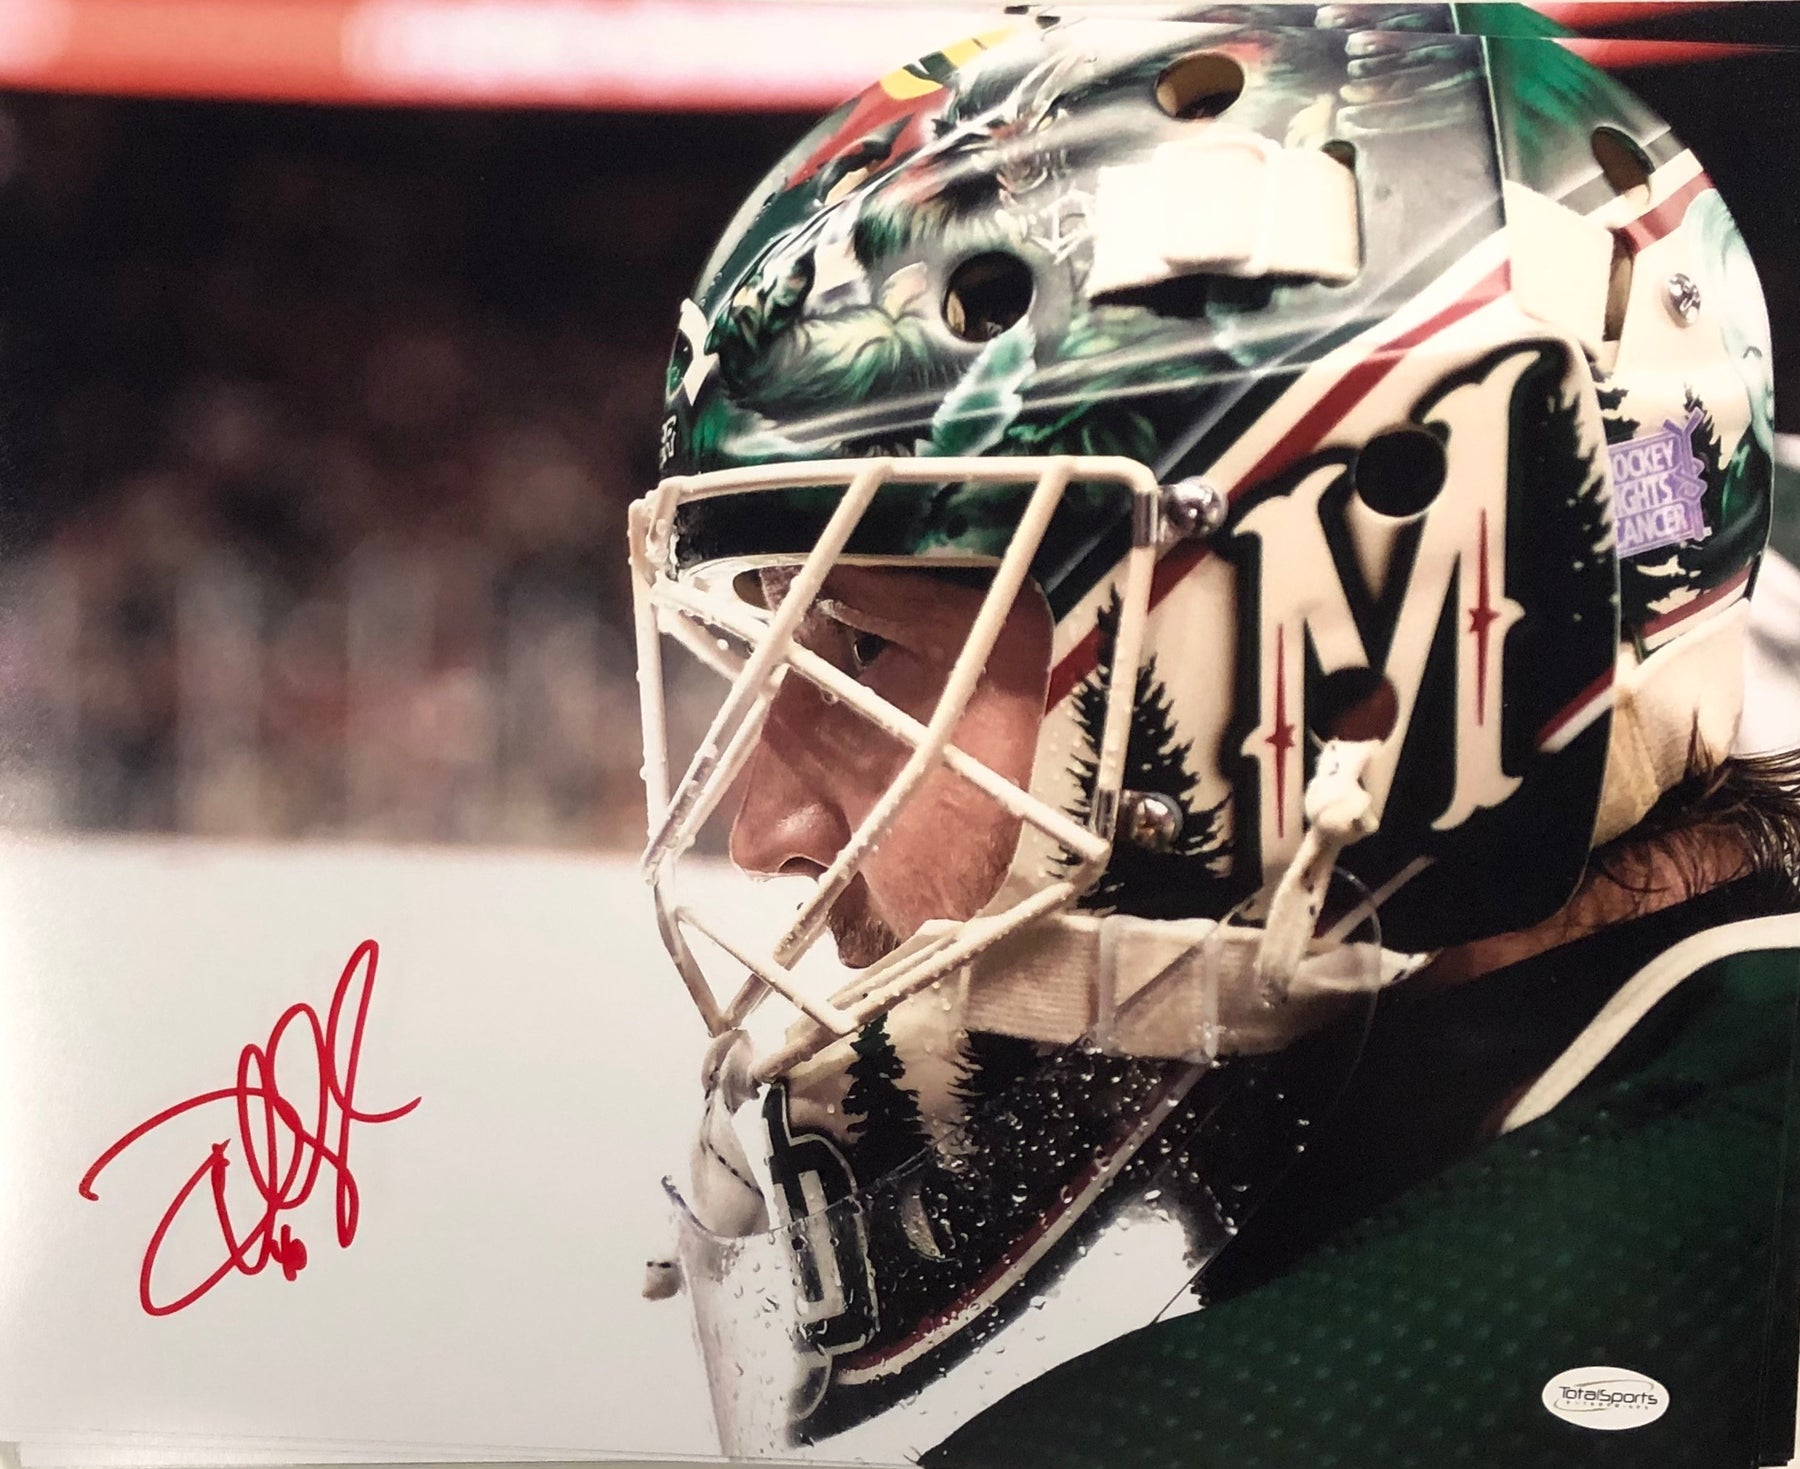 Devan Dubnyk Signed Close Up Mask 11x14 Photo